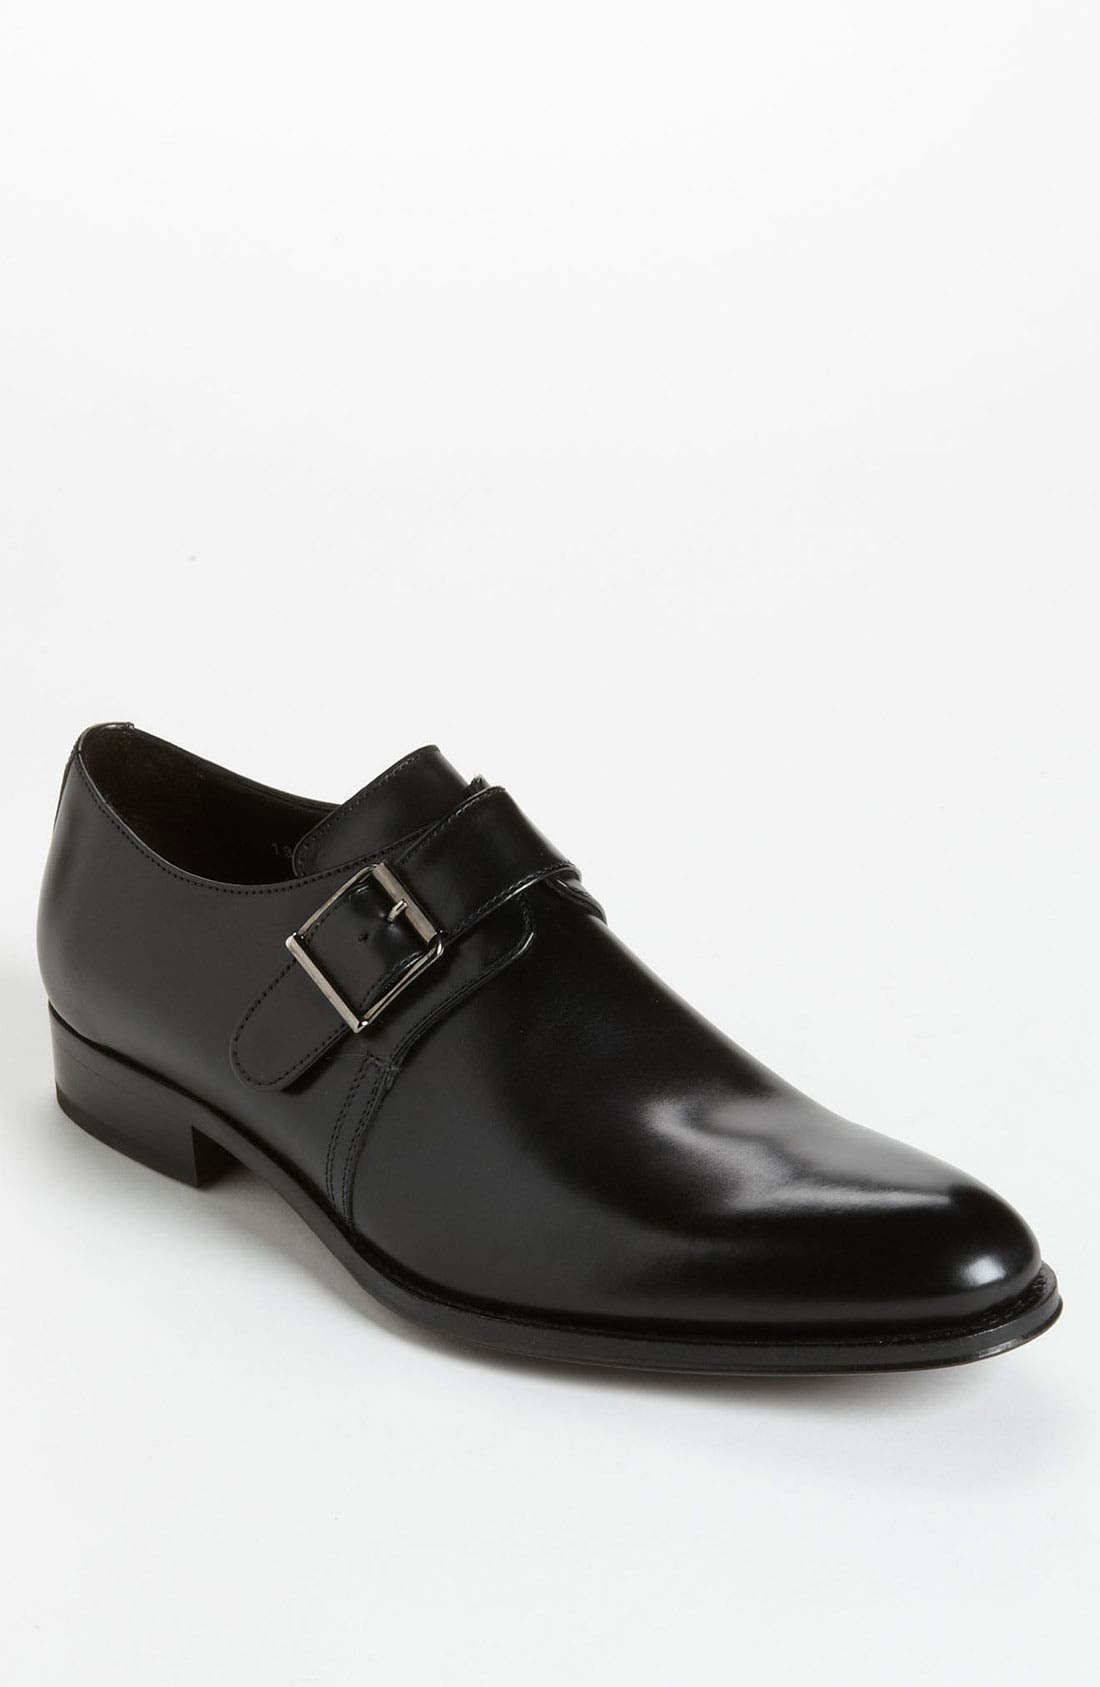 Main Image - To Boot New York 'Campbell' Monk Strap Slip-On